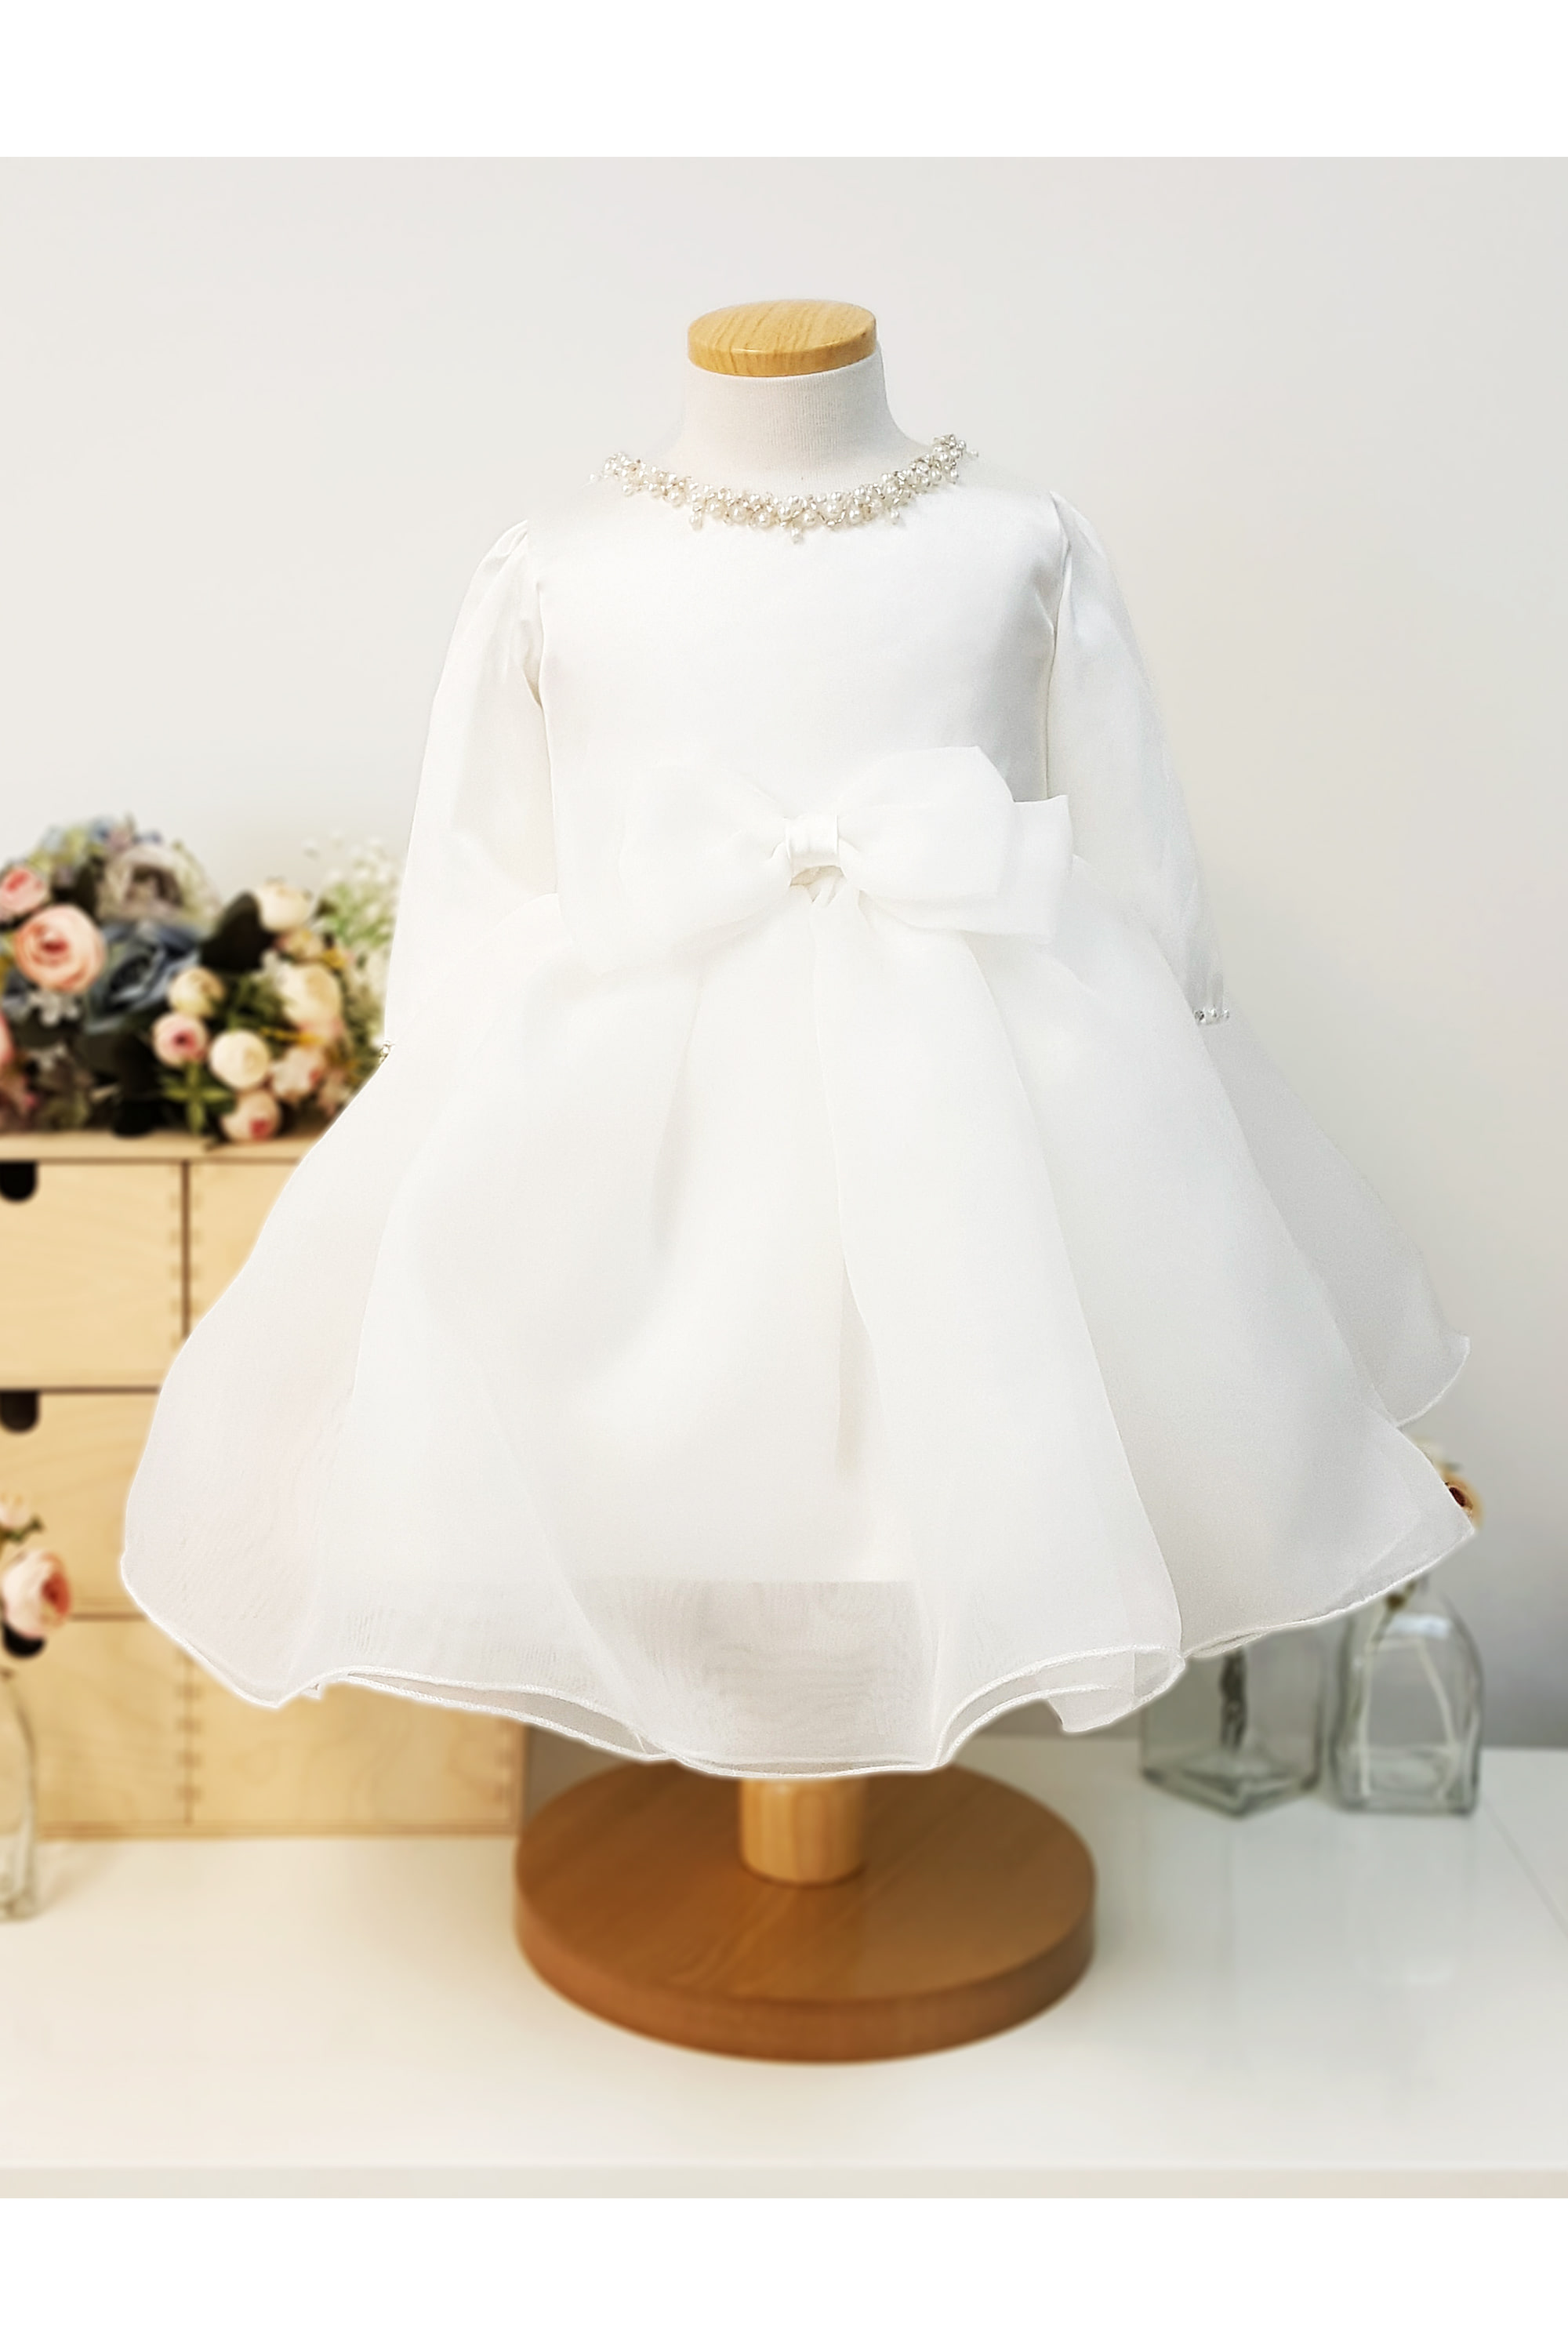 flower girl, baby dress